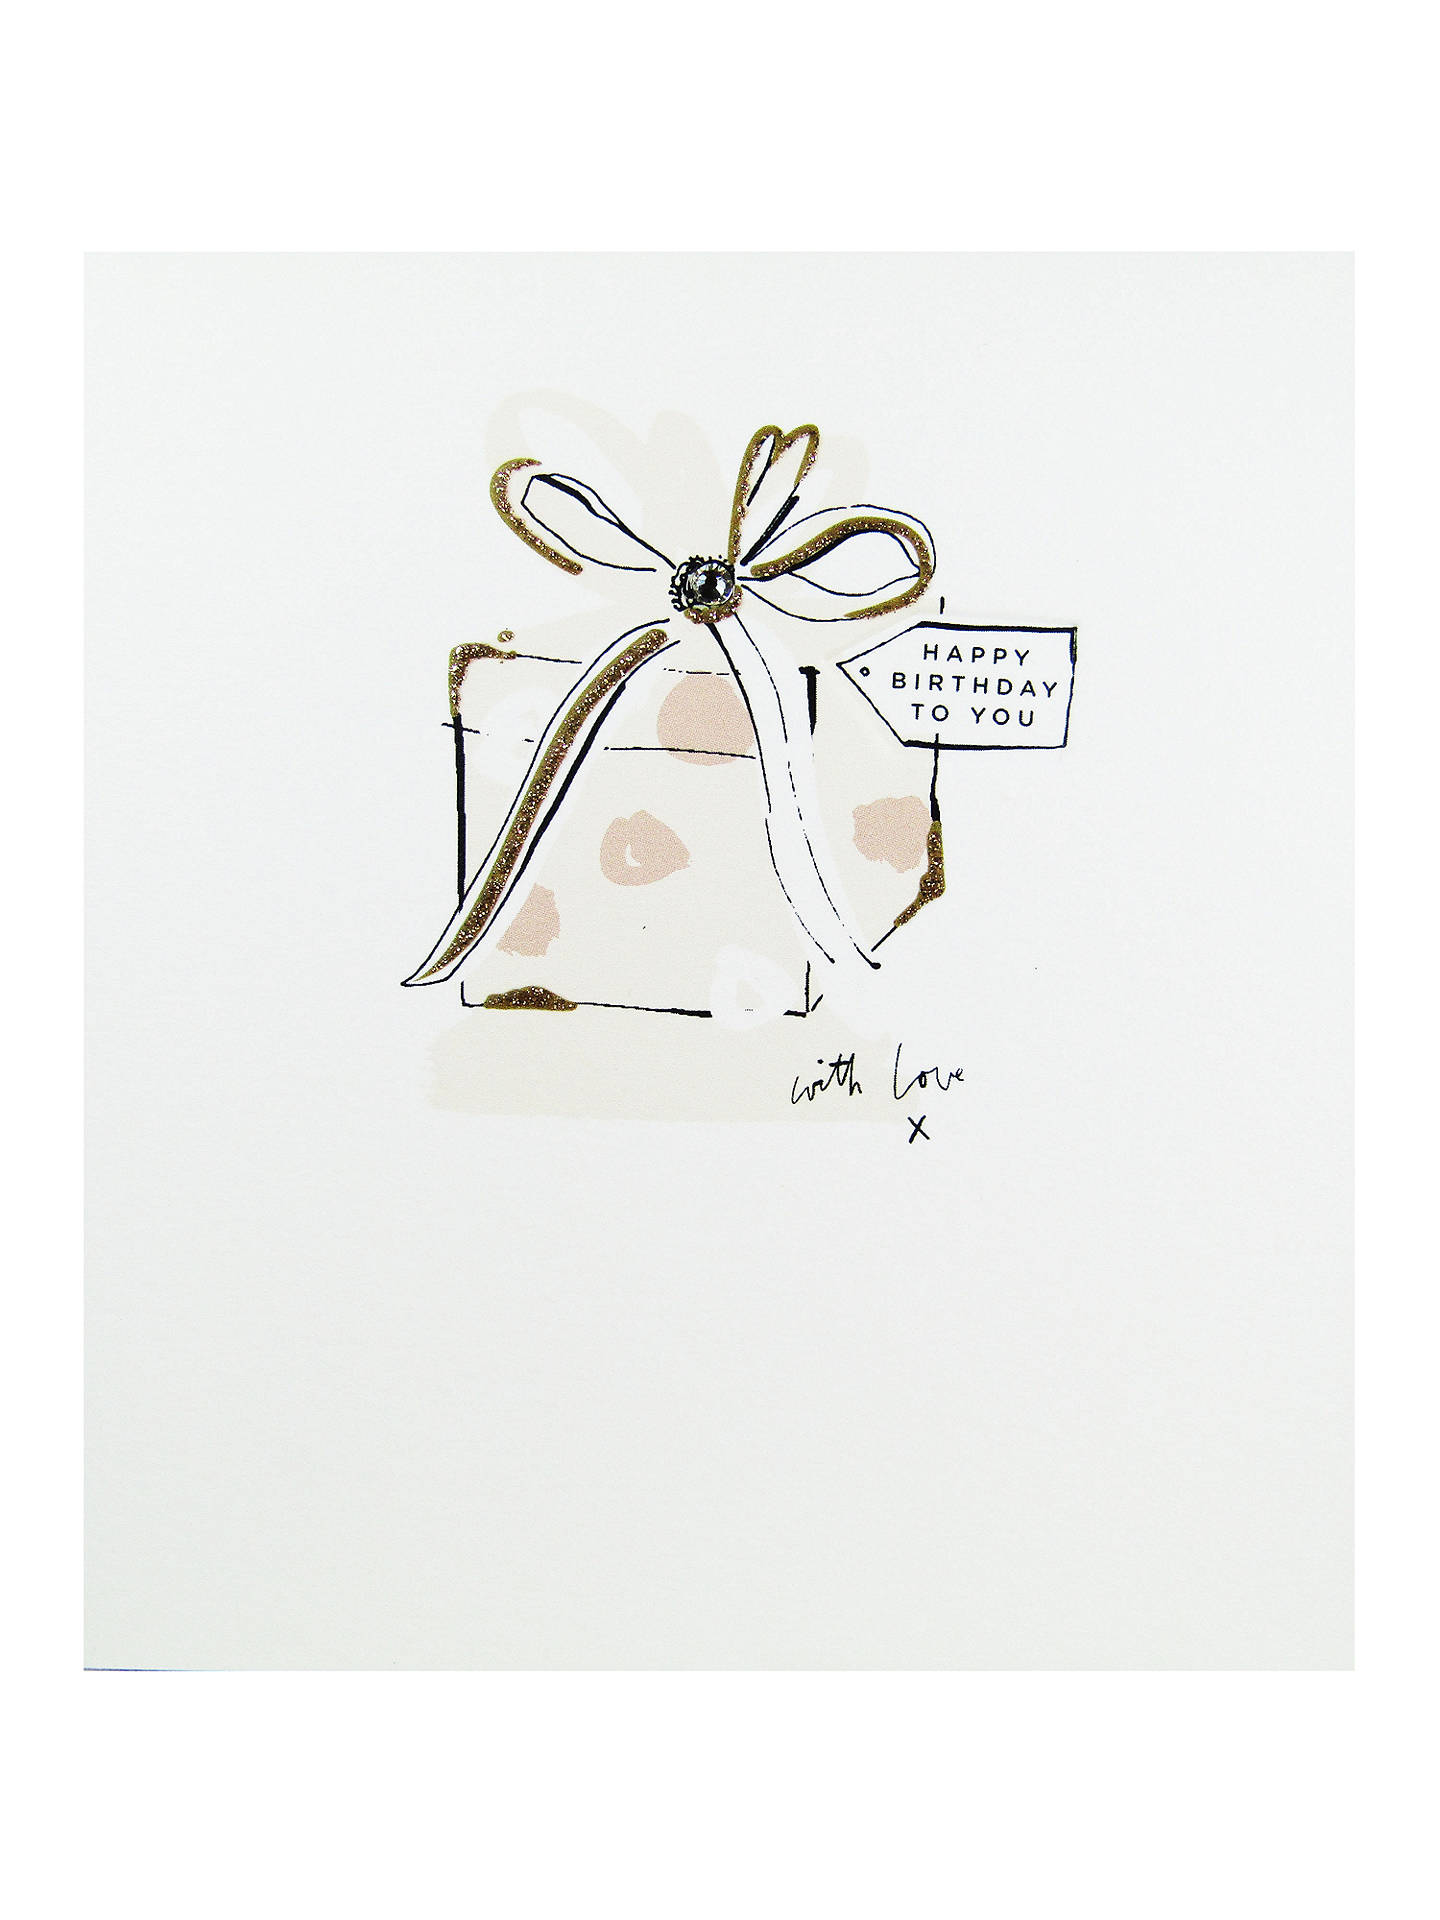 BuyThe Proper Mail Company Present Happy Birthday Card Online At Johnlewis